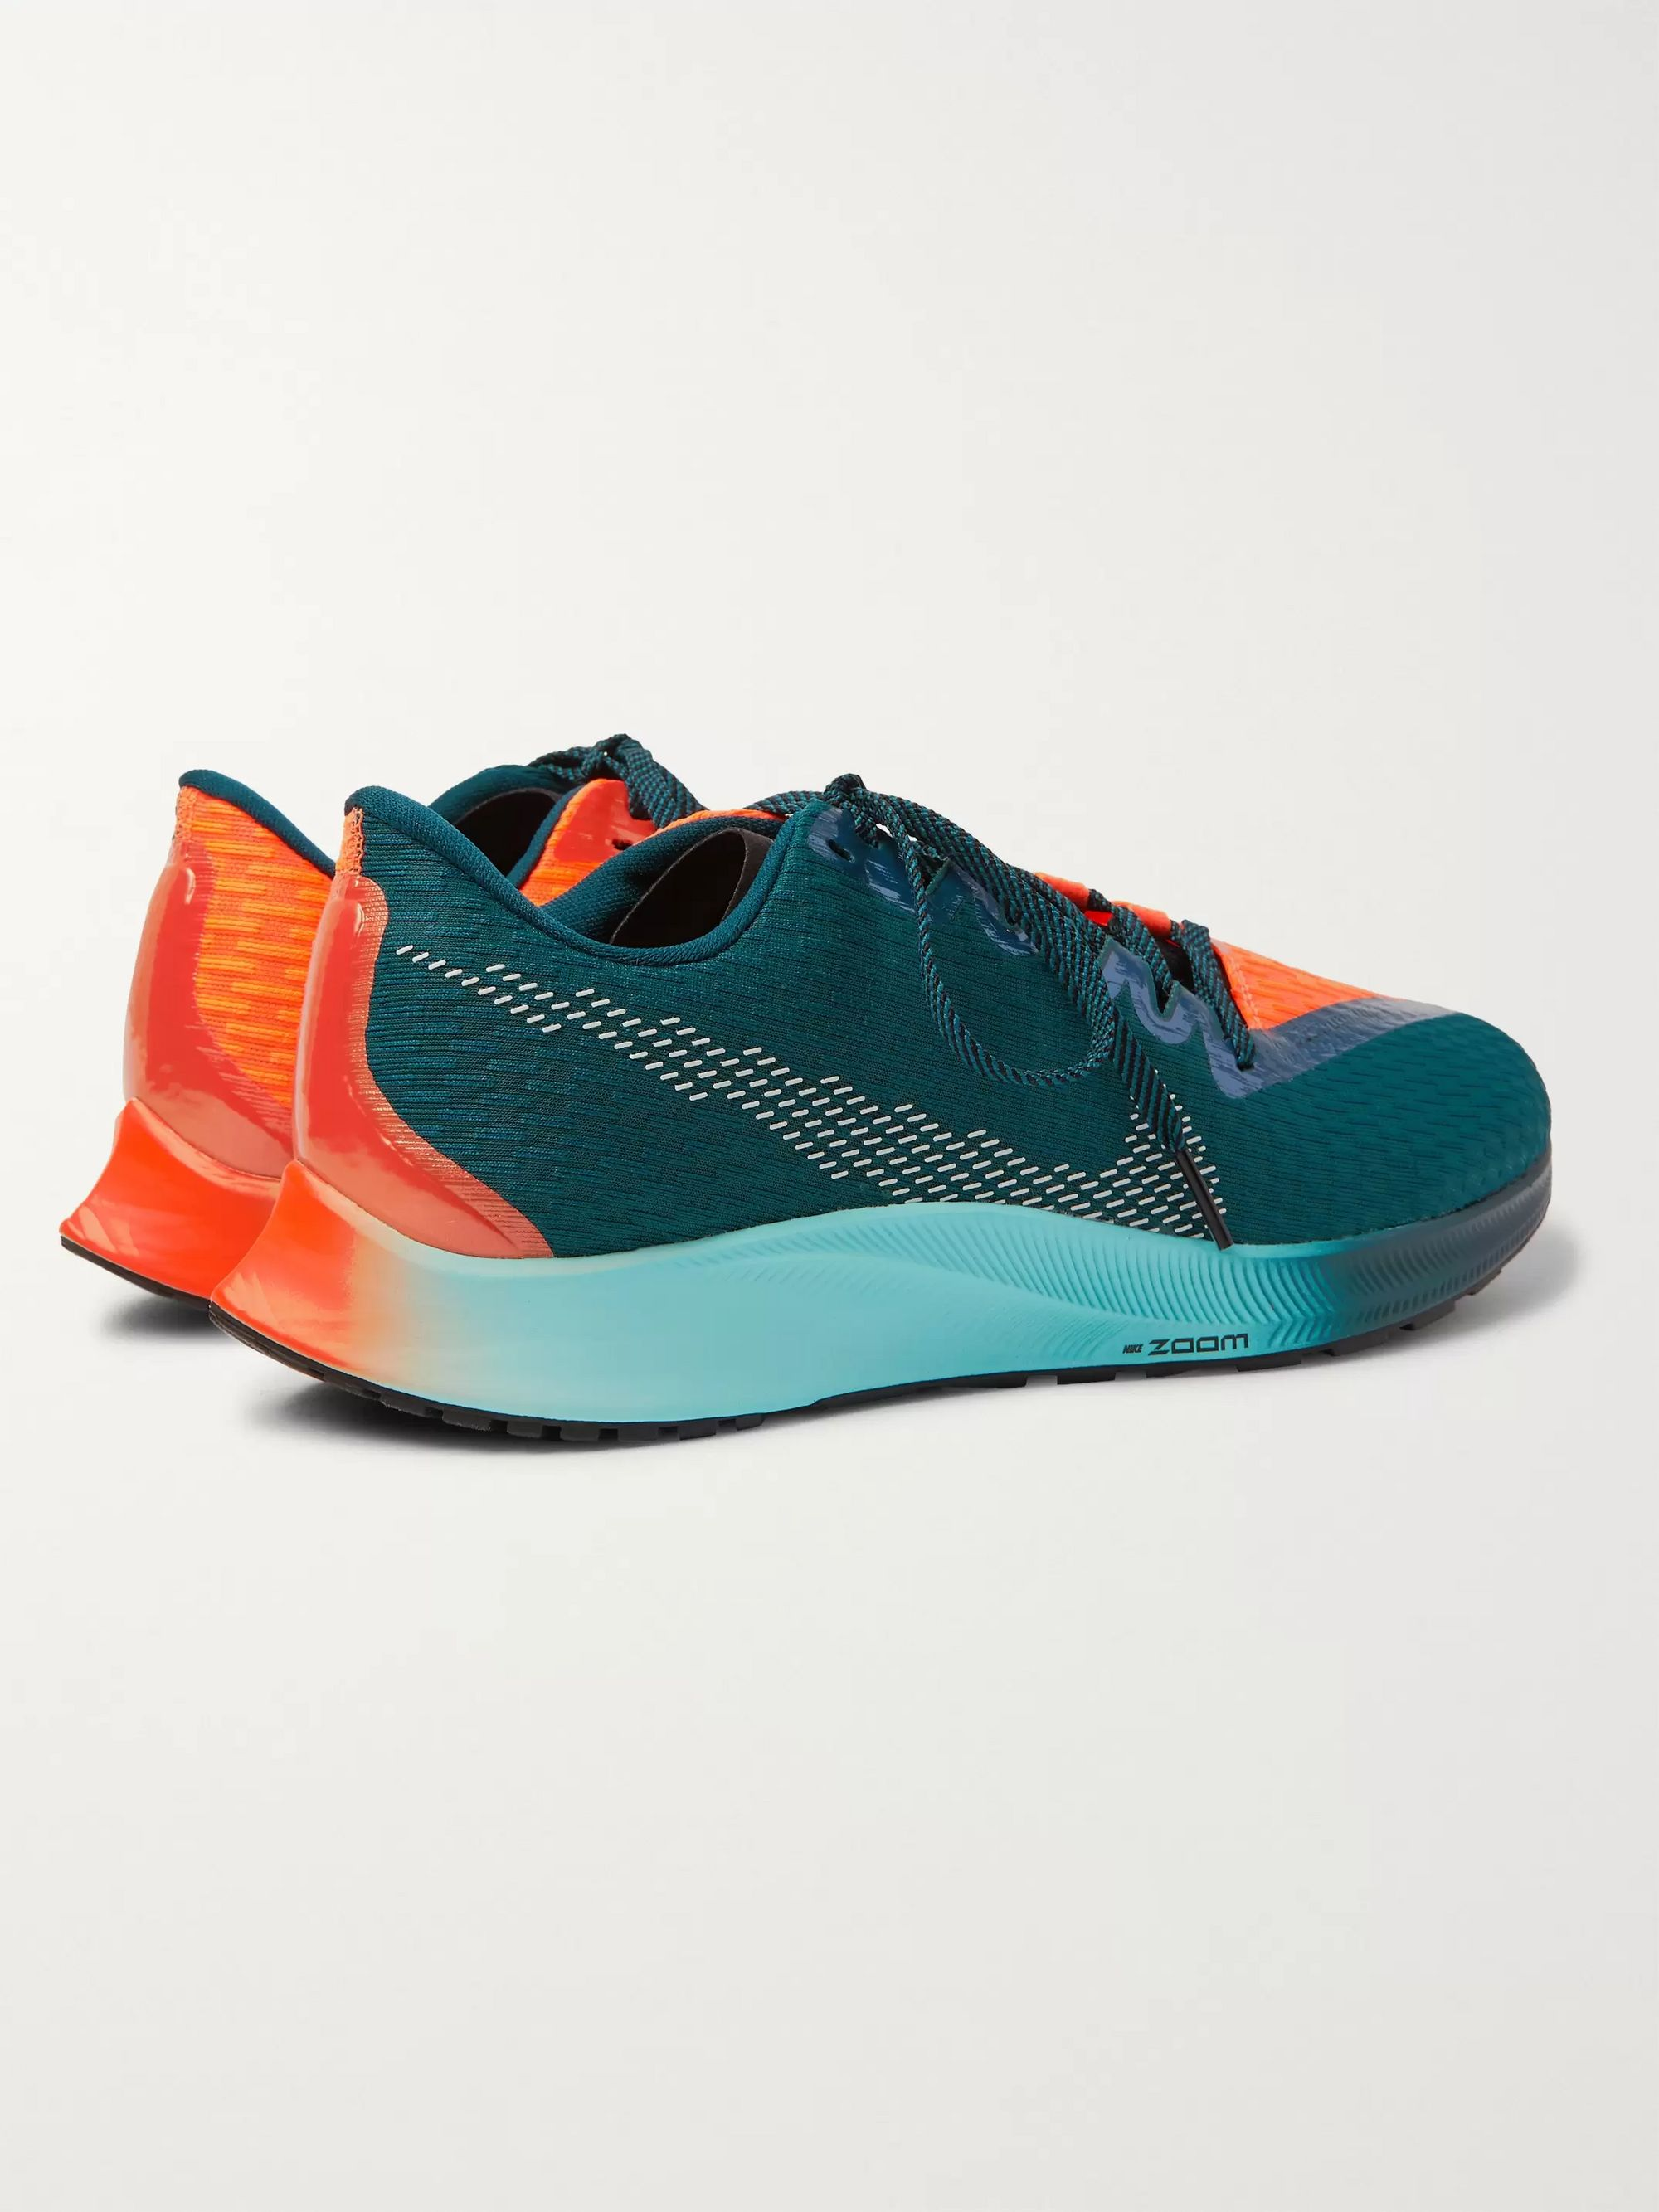 Nike Running Zoom Rival Fly 2 Vaporweave Running Sneakers